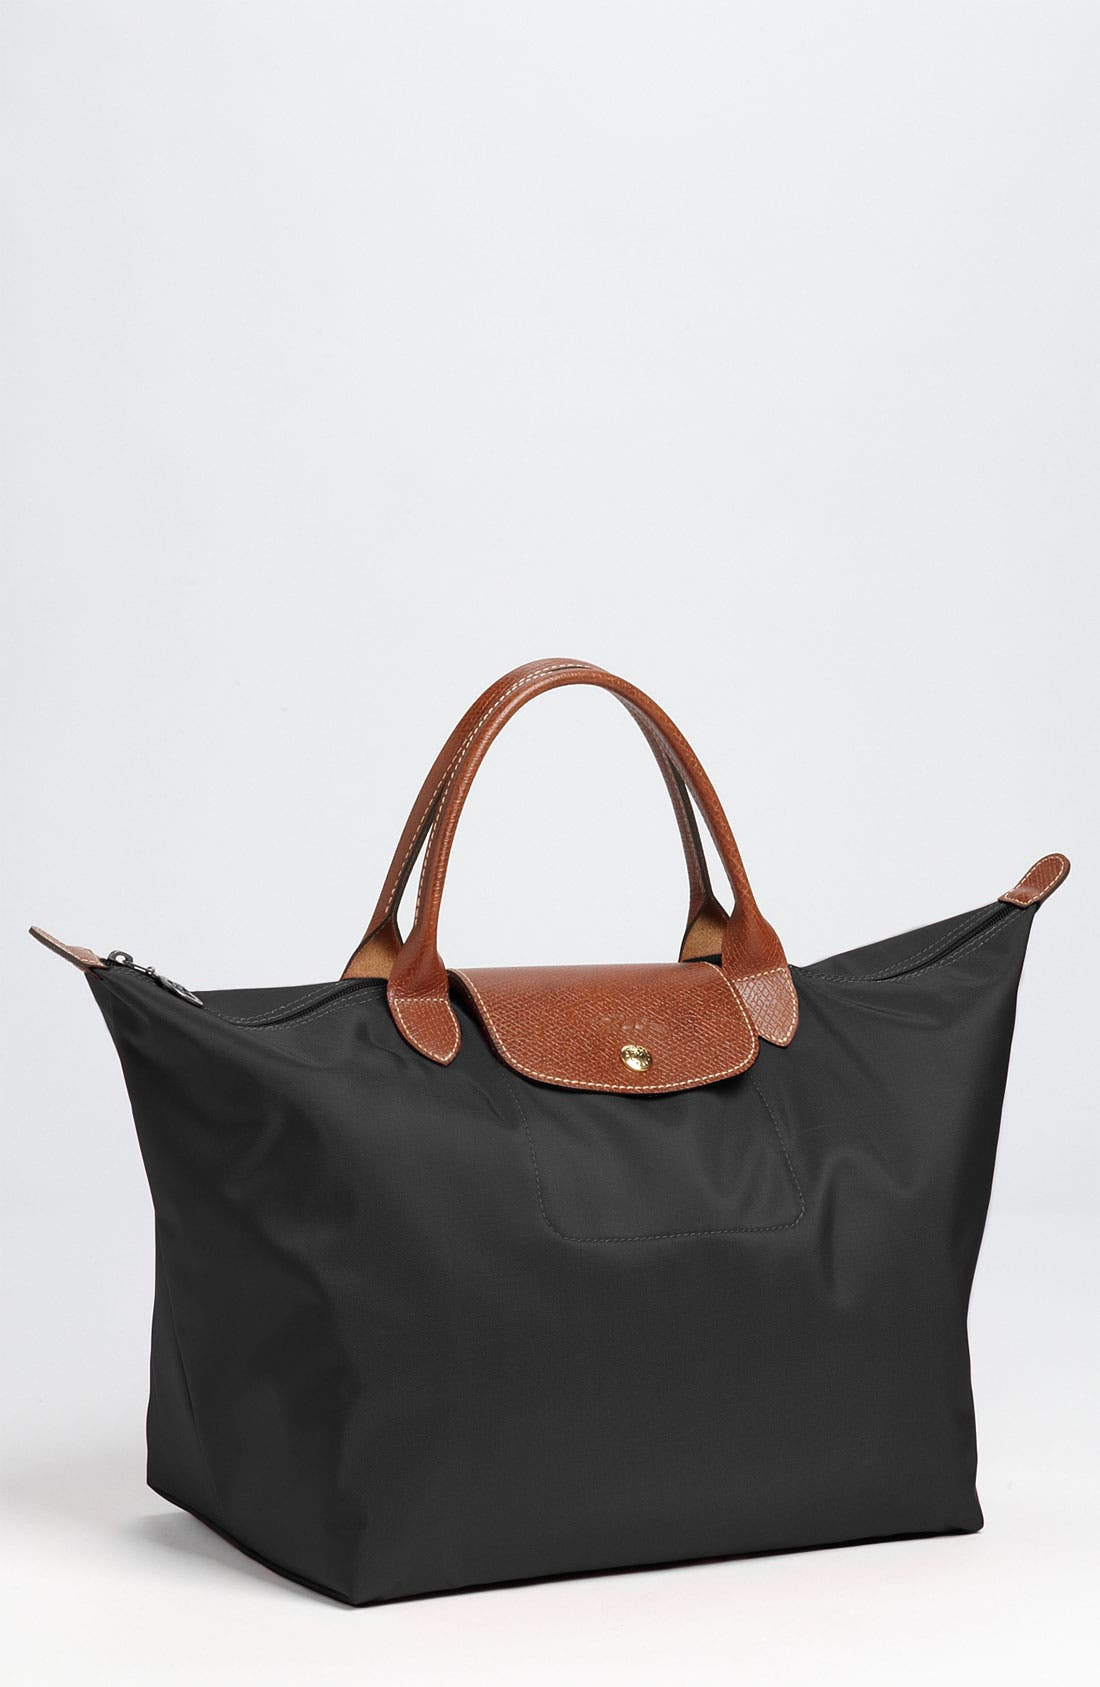 Alternate Image 1 Selected - Longchamp 'Medium Le Pliage' Tote